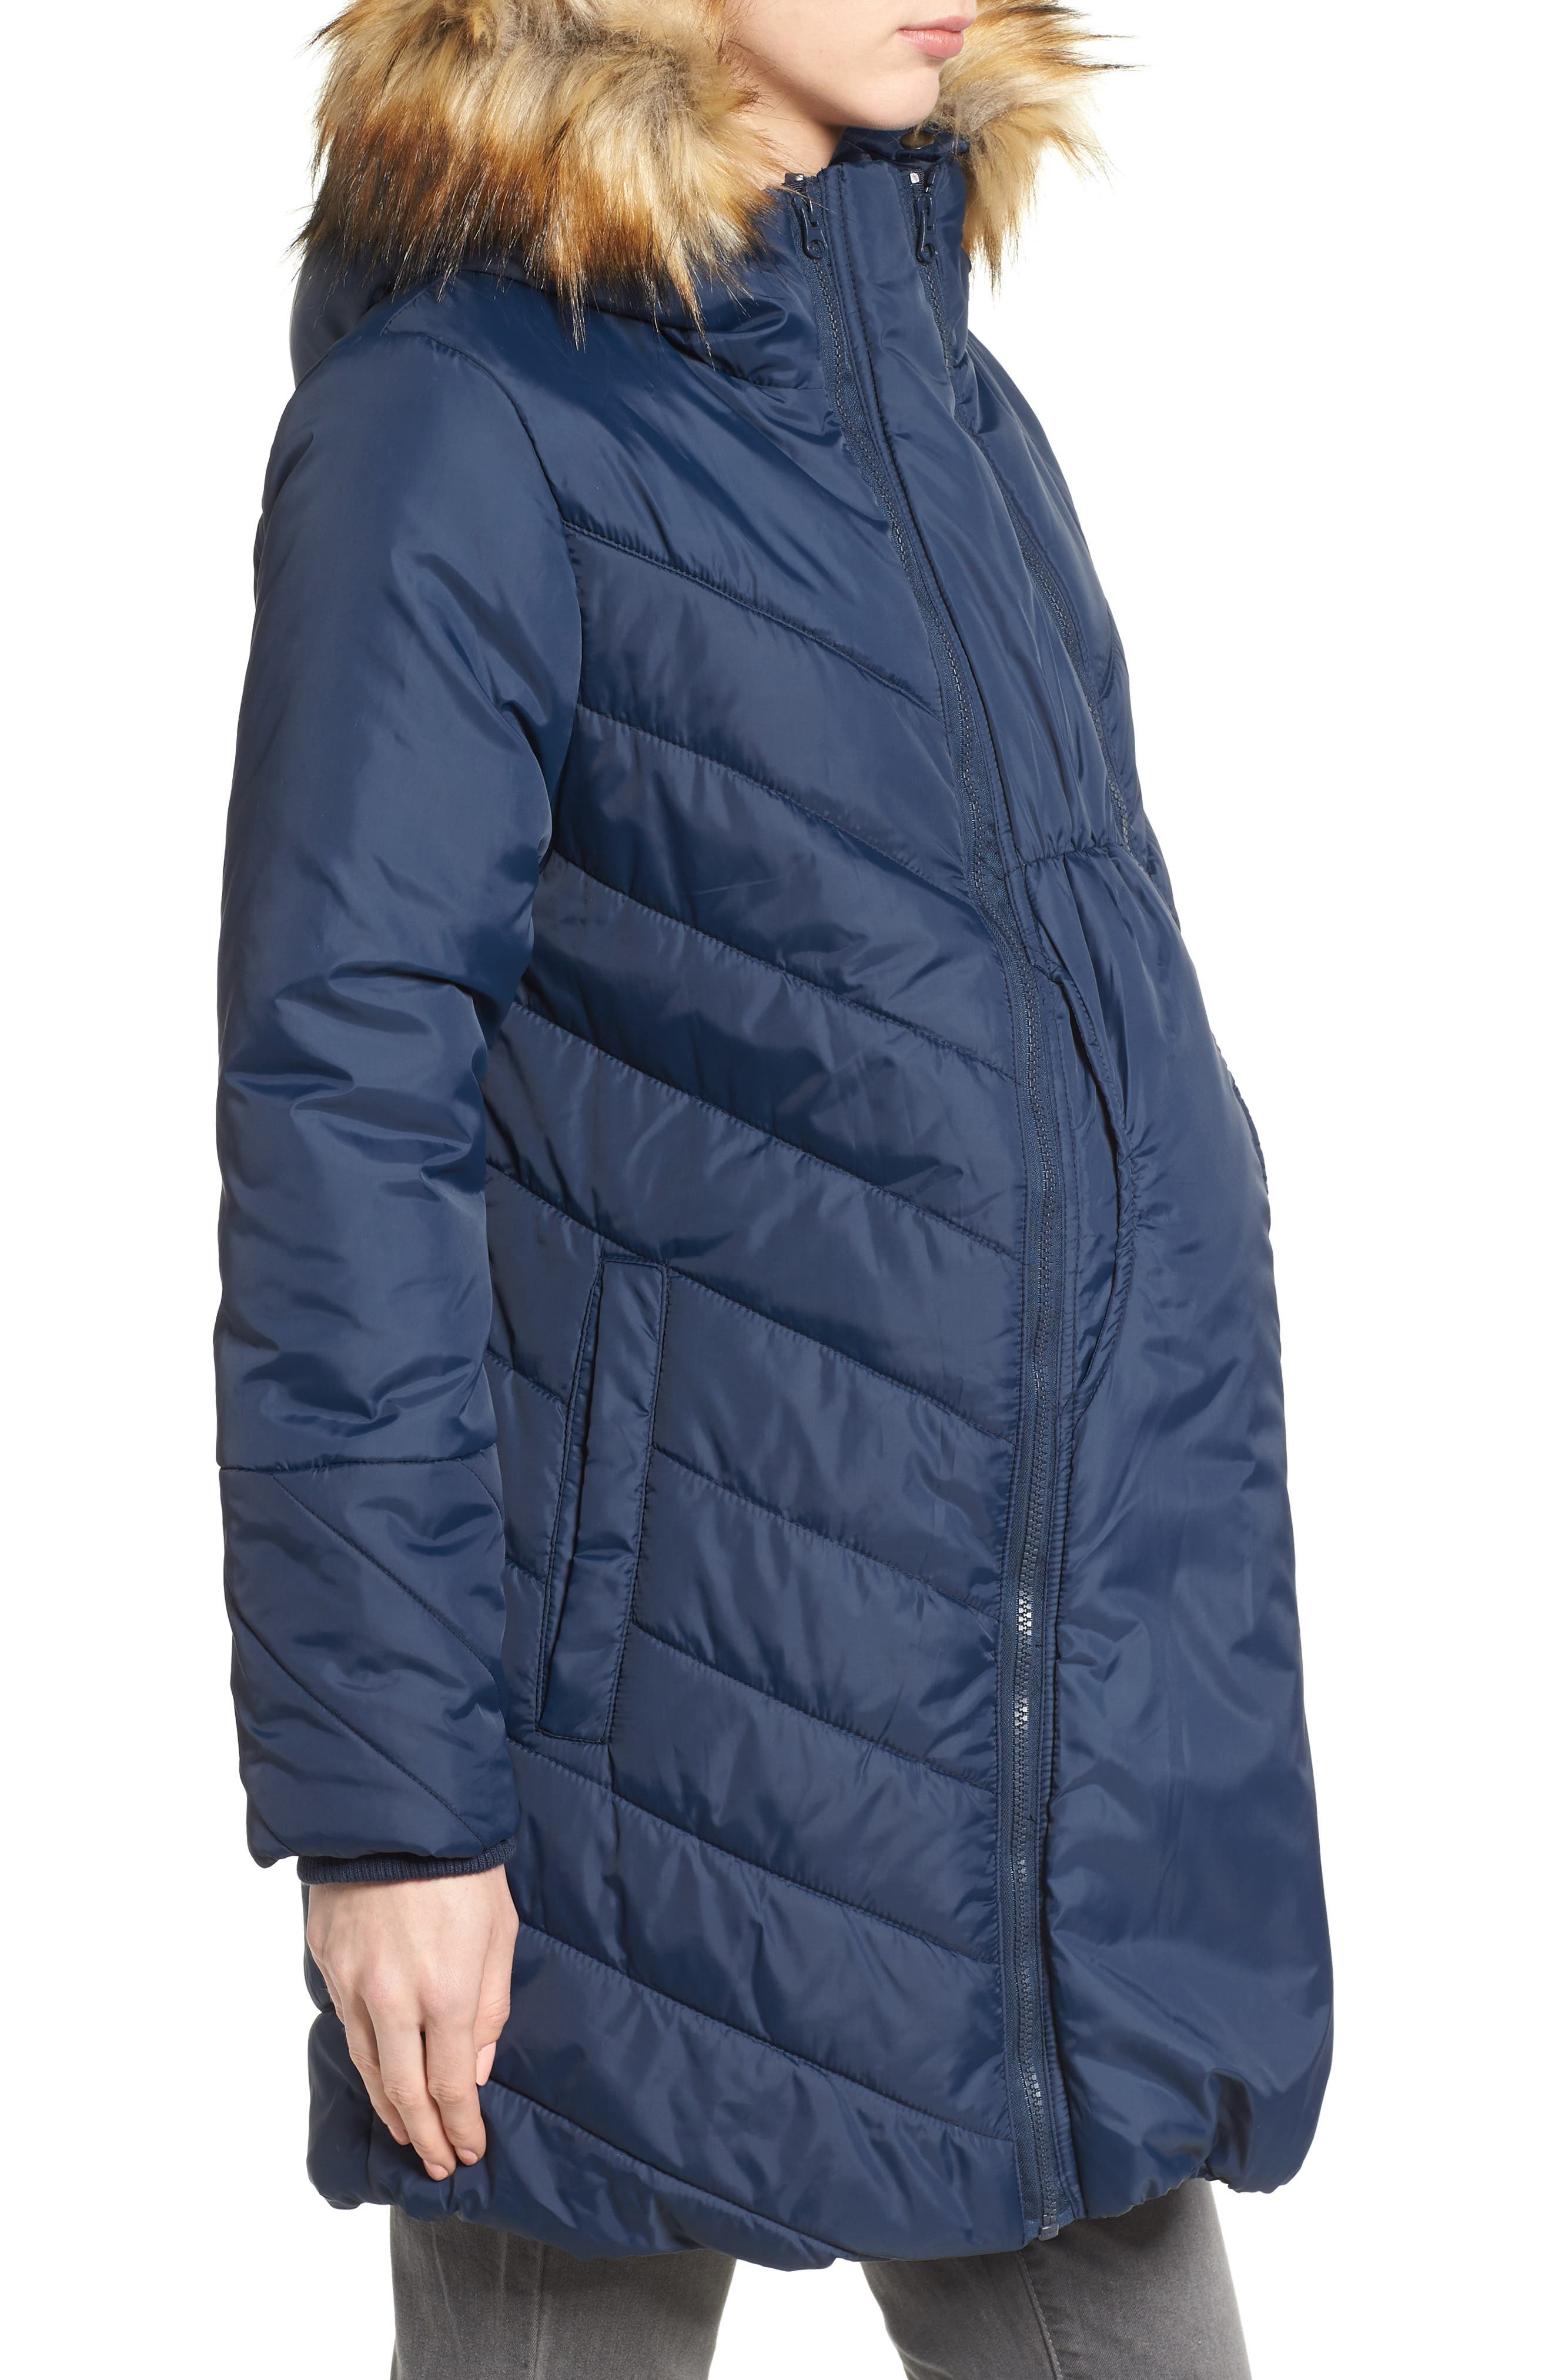 Faux Fur Trim Convertible Puffer 3-in-1 Maternity Jacket,                             Alternate thumbnail 4, color,                             Navy